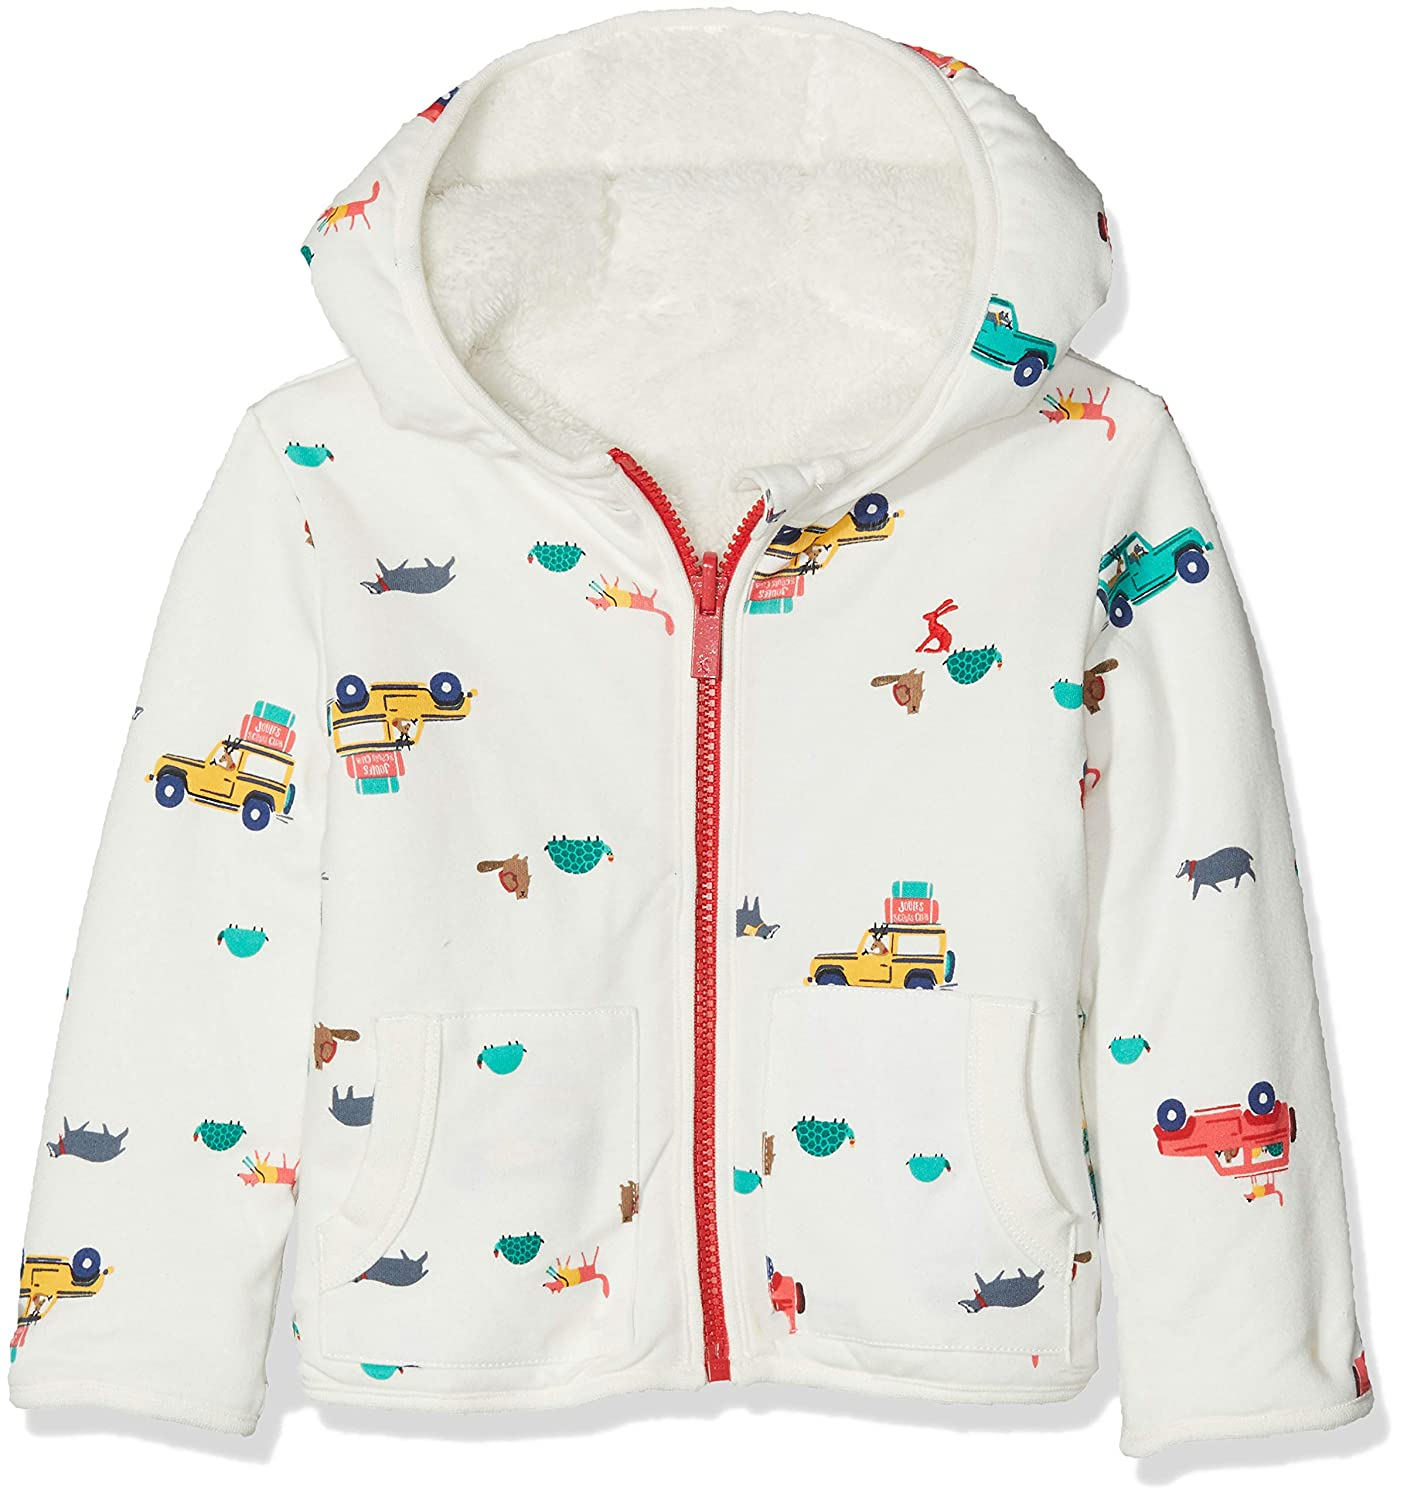 Joules Baby Boys' James Jacket